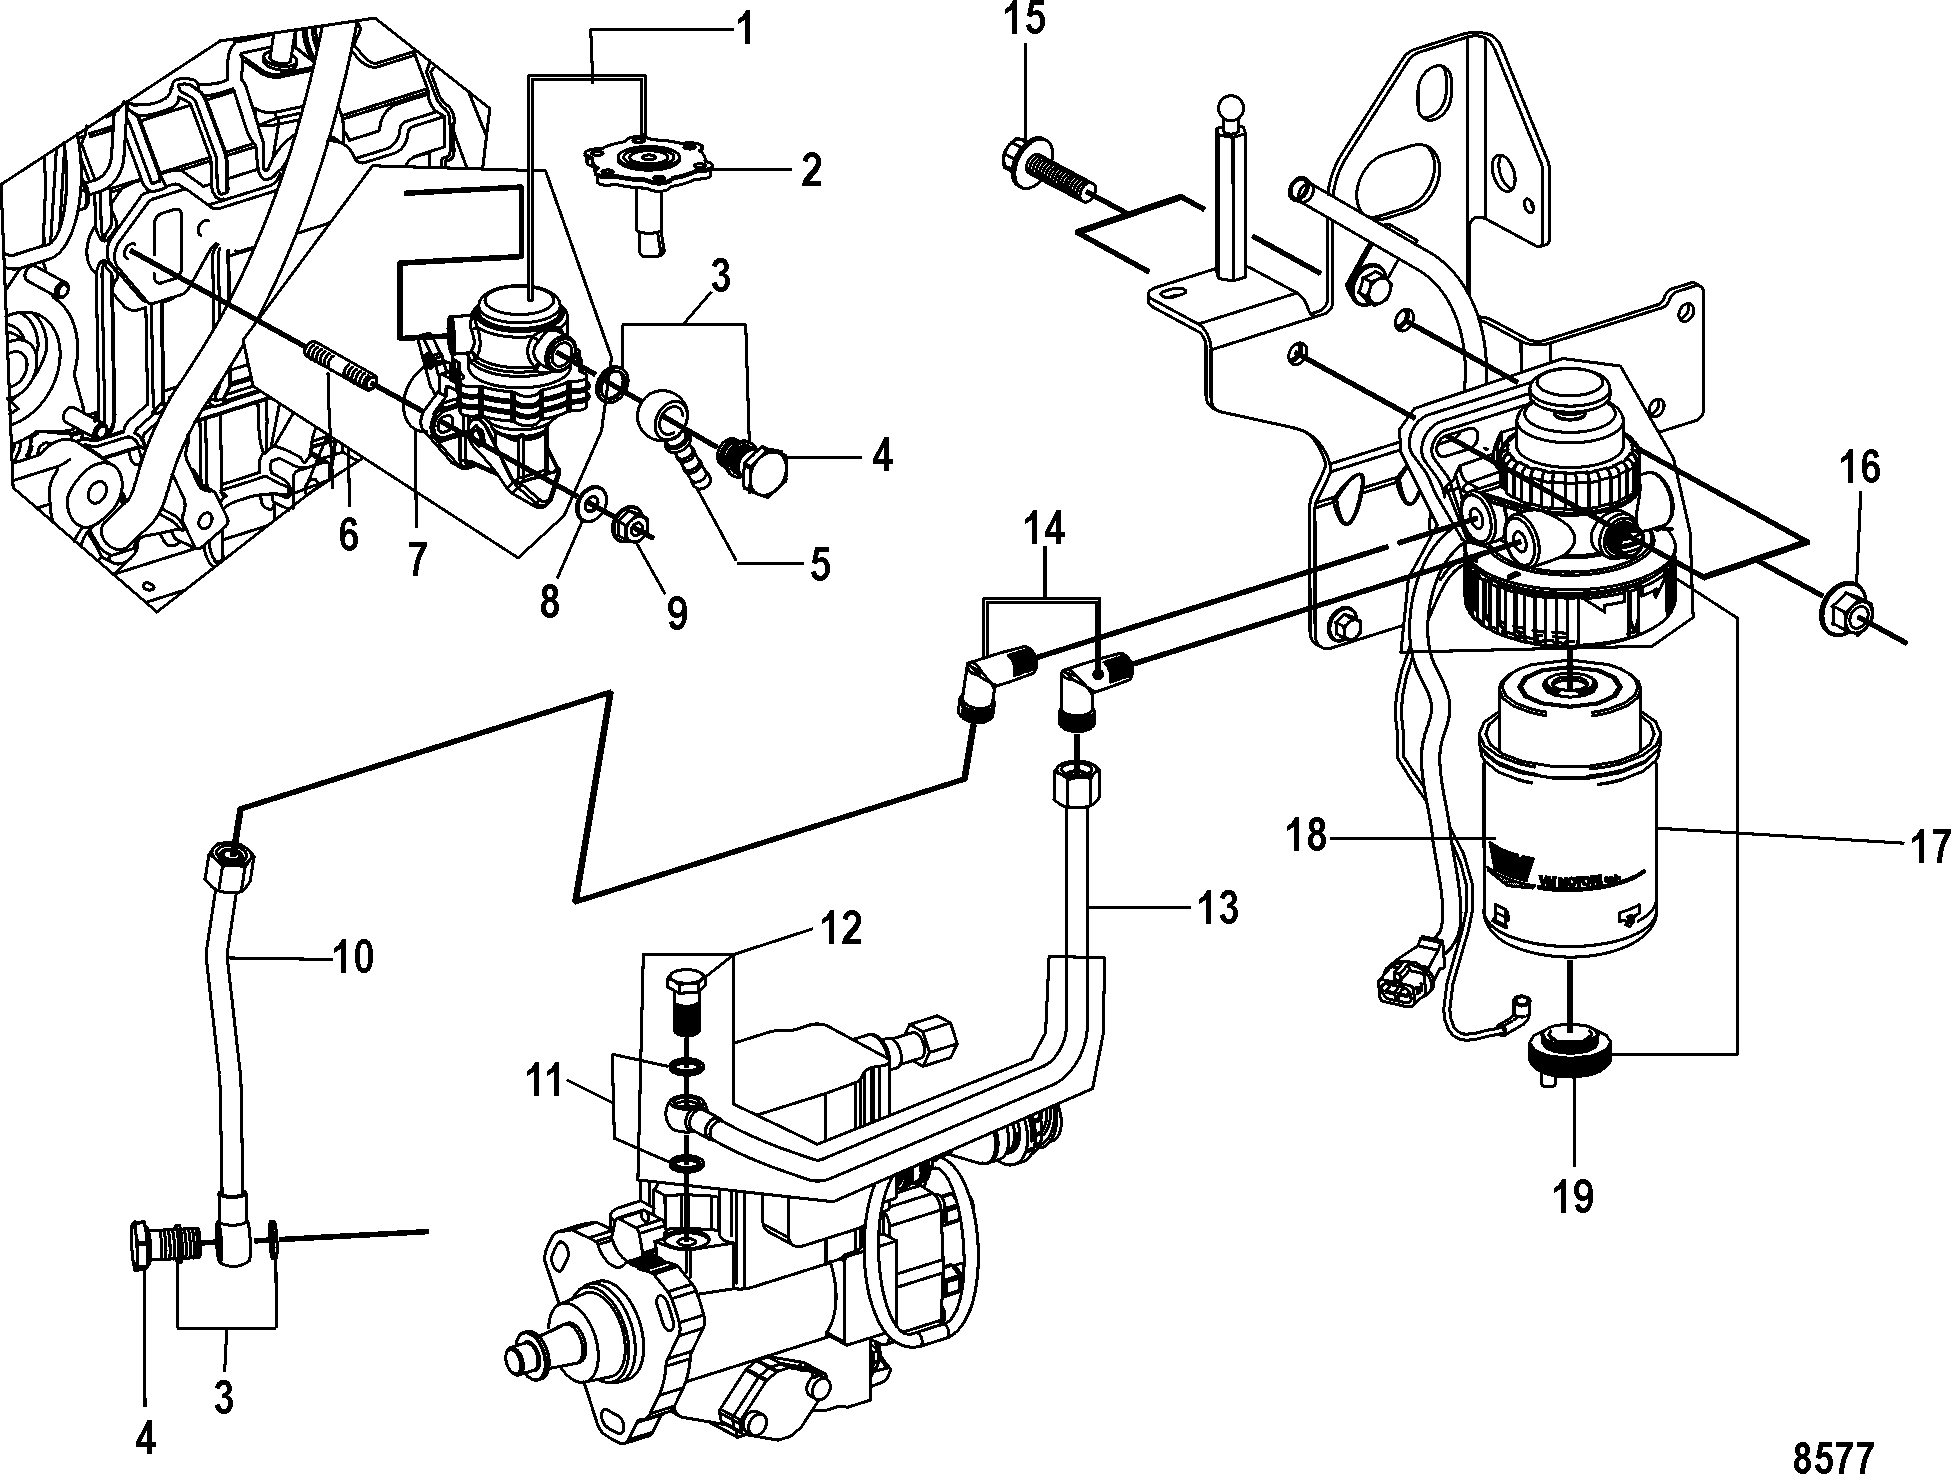 Show product on mercruiser 4 3 electric fuel pump wiring diagram